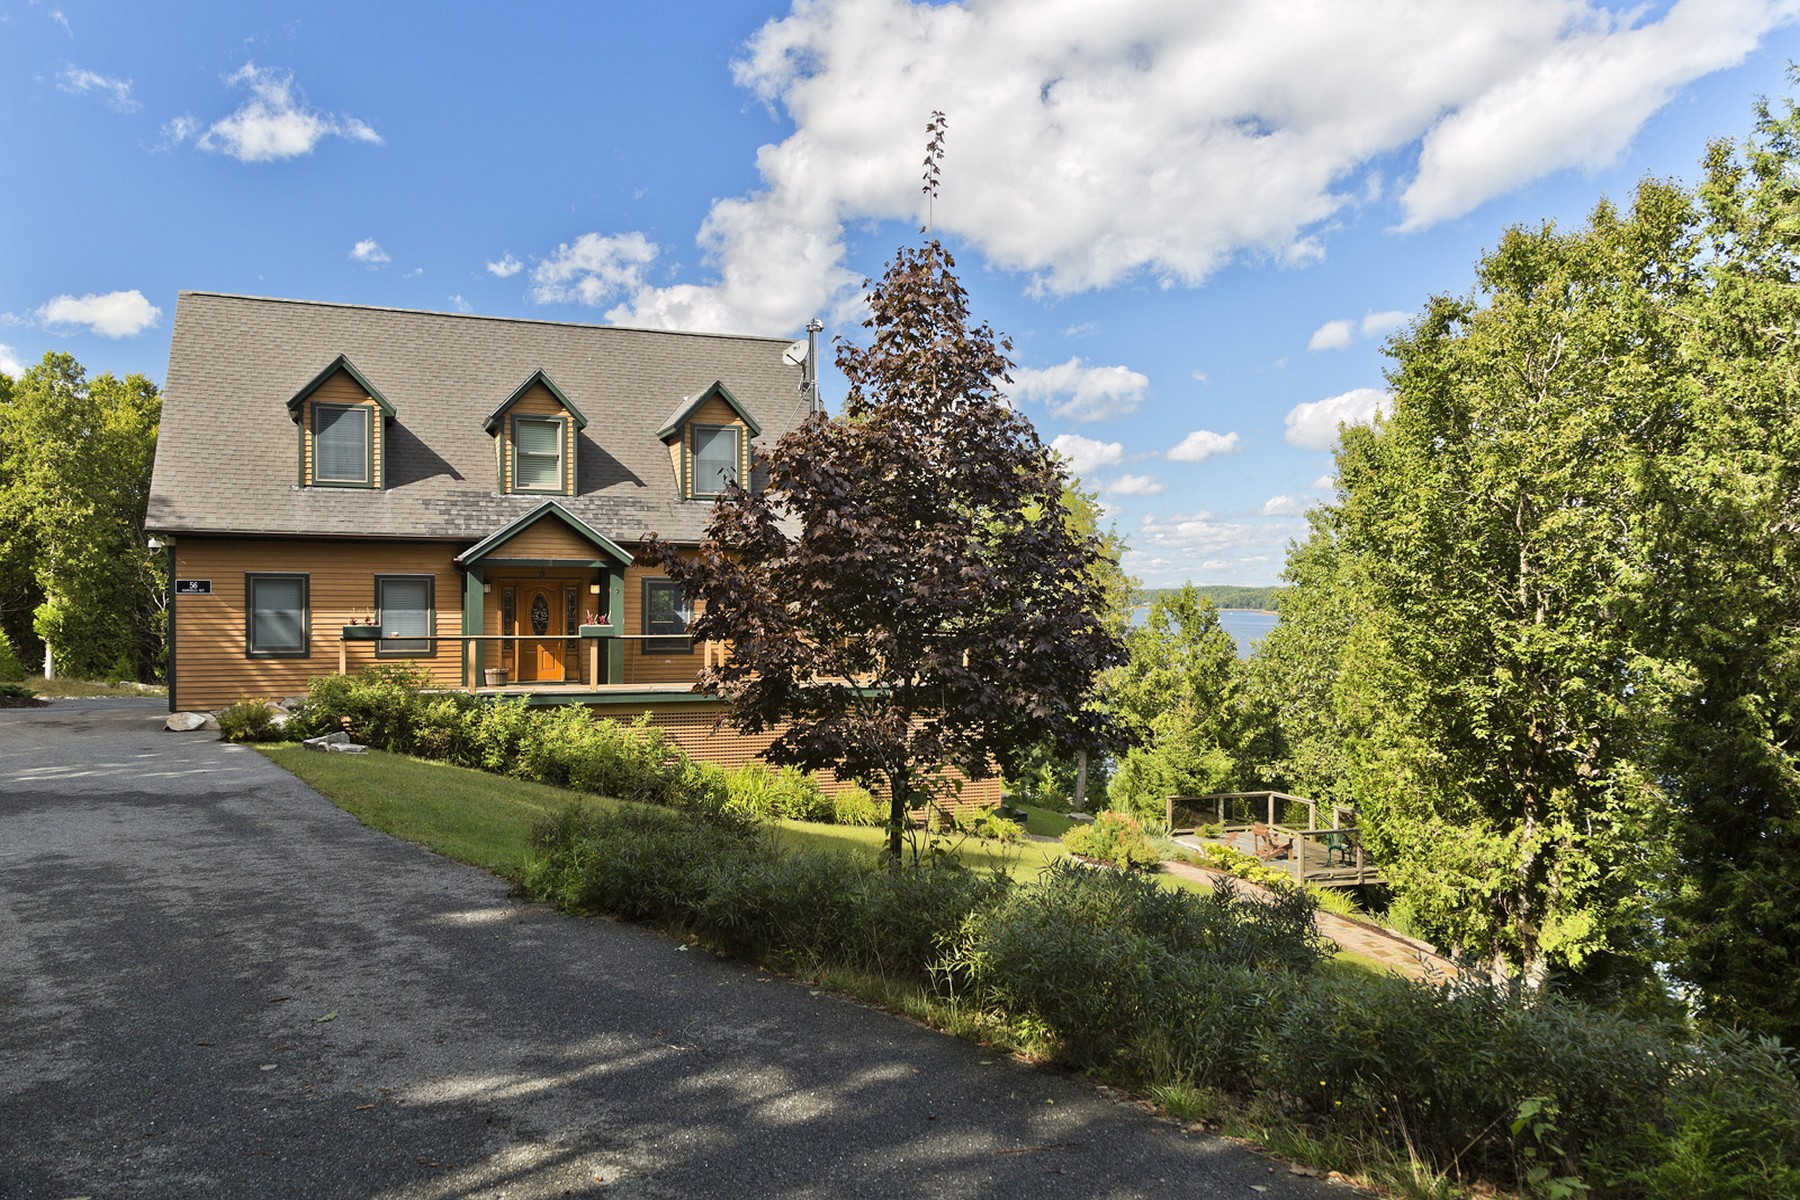 Single Family Home for Sale at Fjord House 56 Hannibals Way Mount Desert, Maine 04660 United States